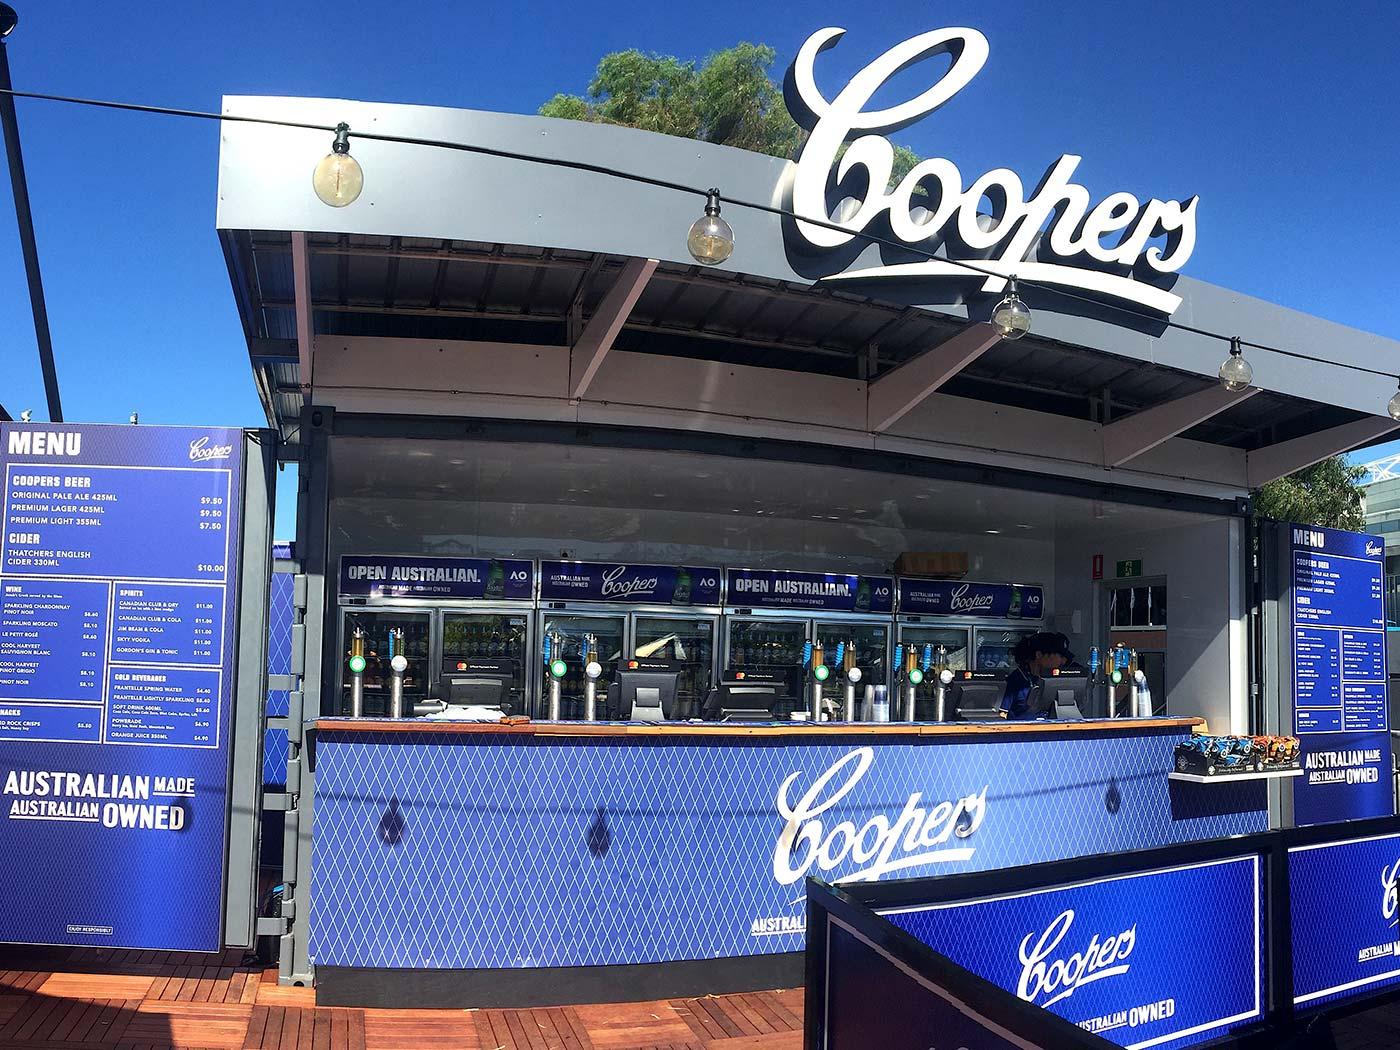 Coopers-20ft-Shipping-Container-Bar-2